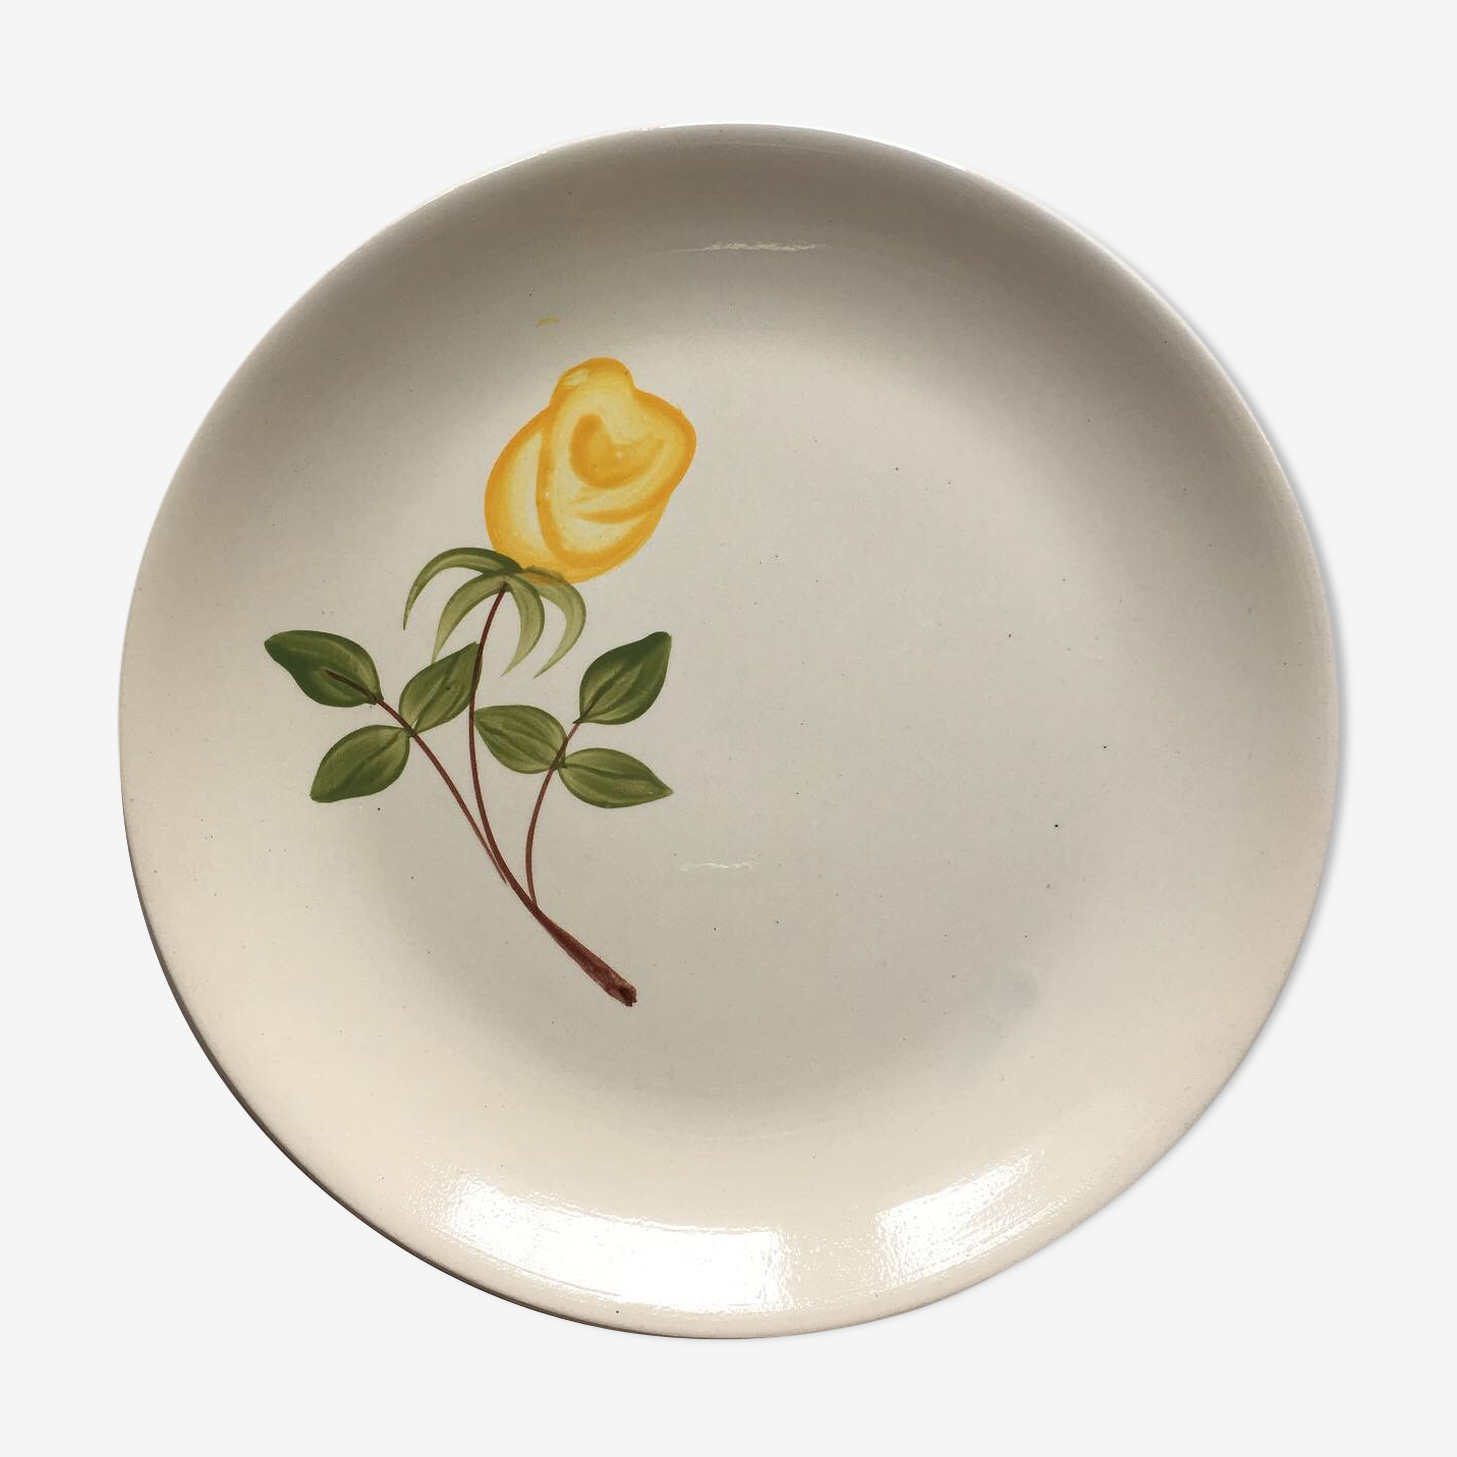 Digoin faience plate decorated with a yellow rose